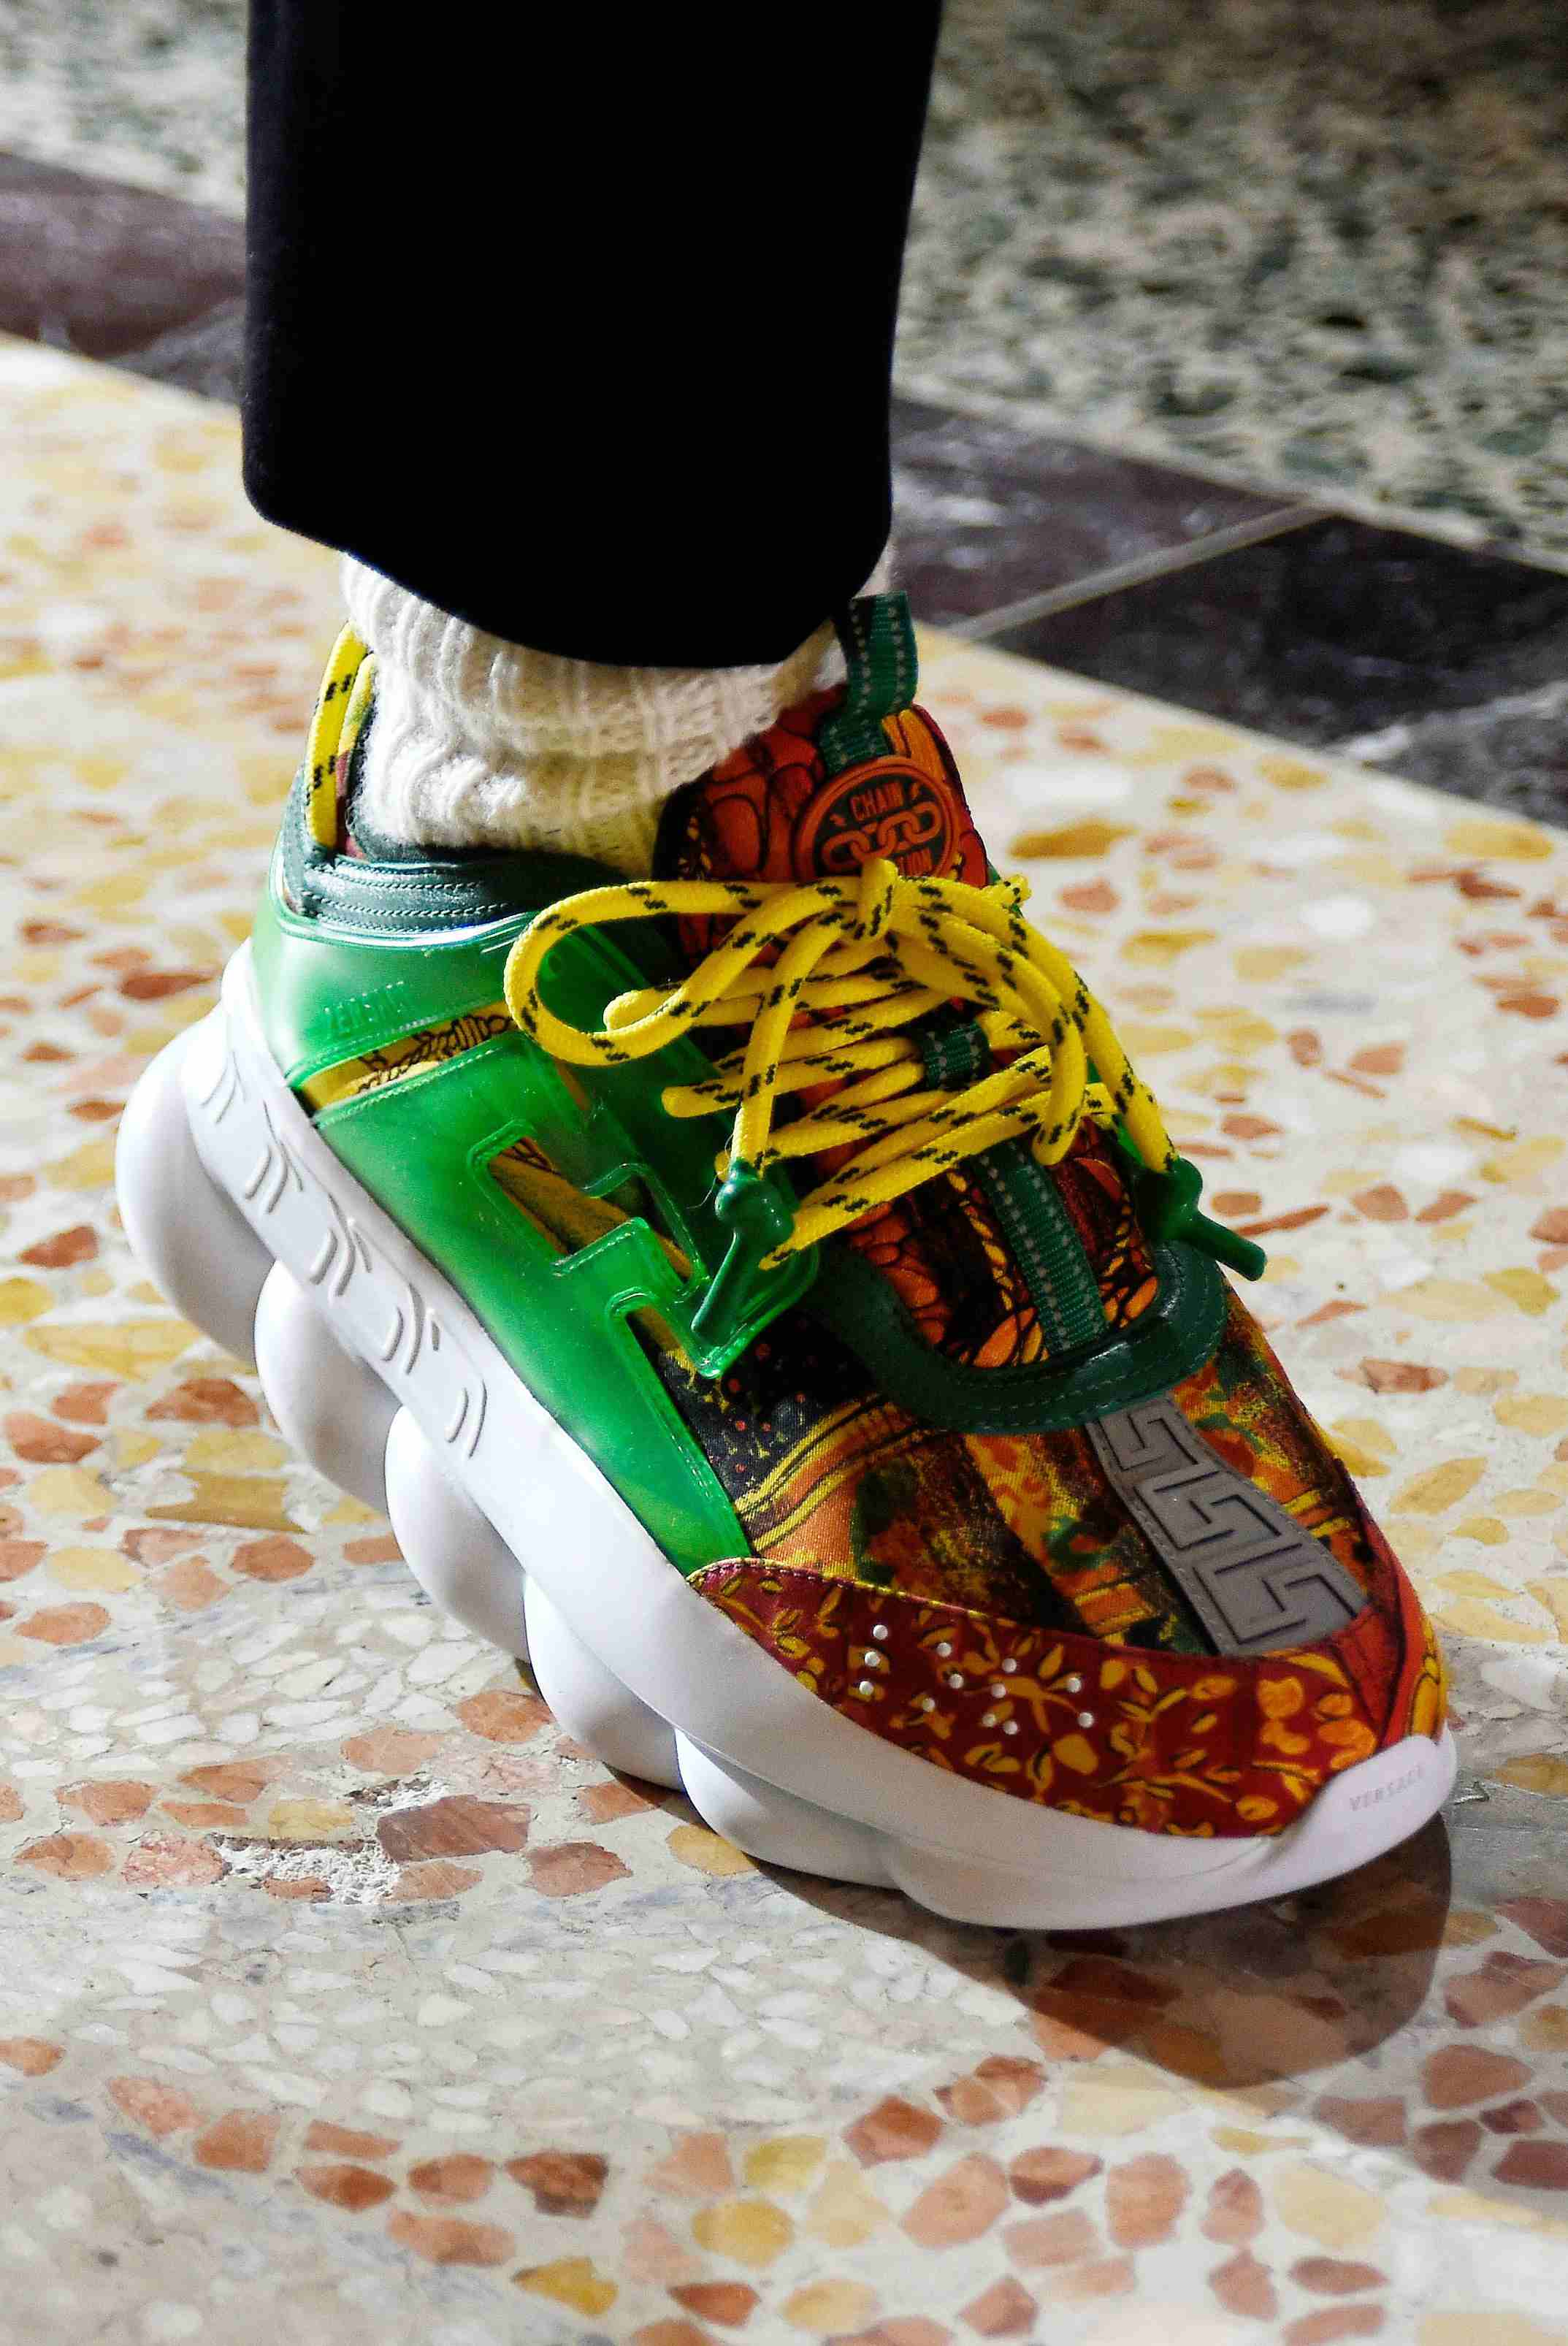 Versace Teams With 2 Chainz on Sneakers for Fall 2018 Runway